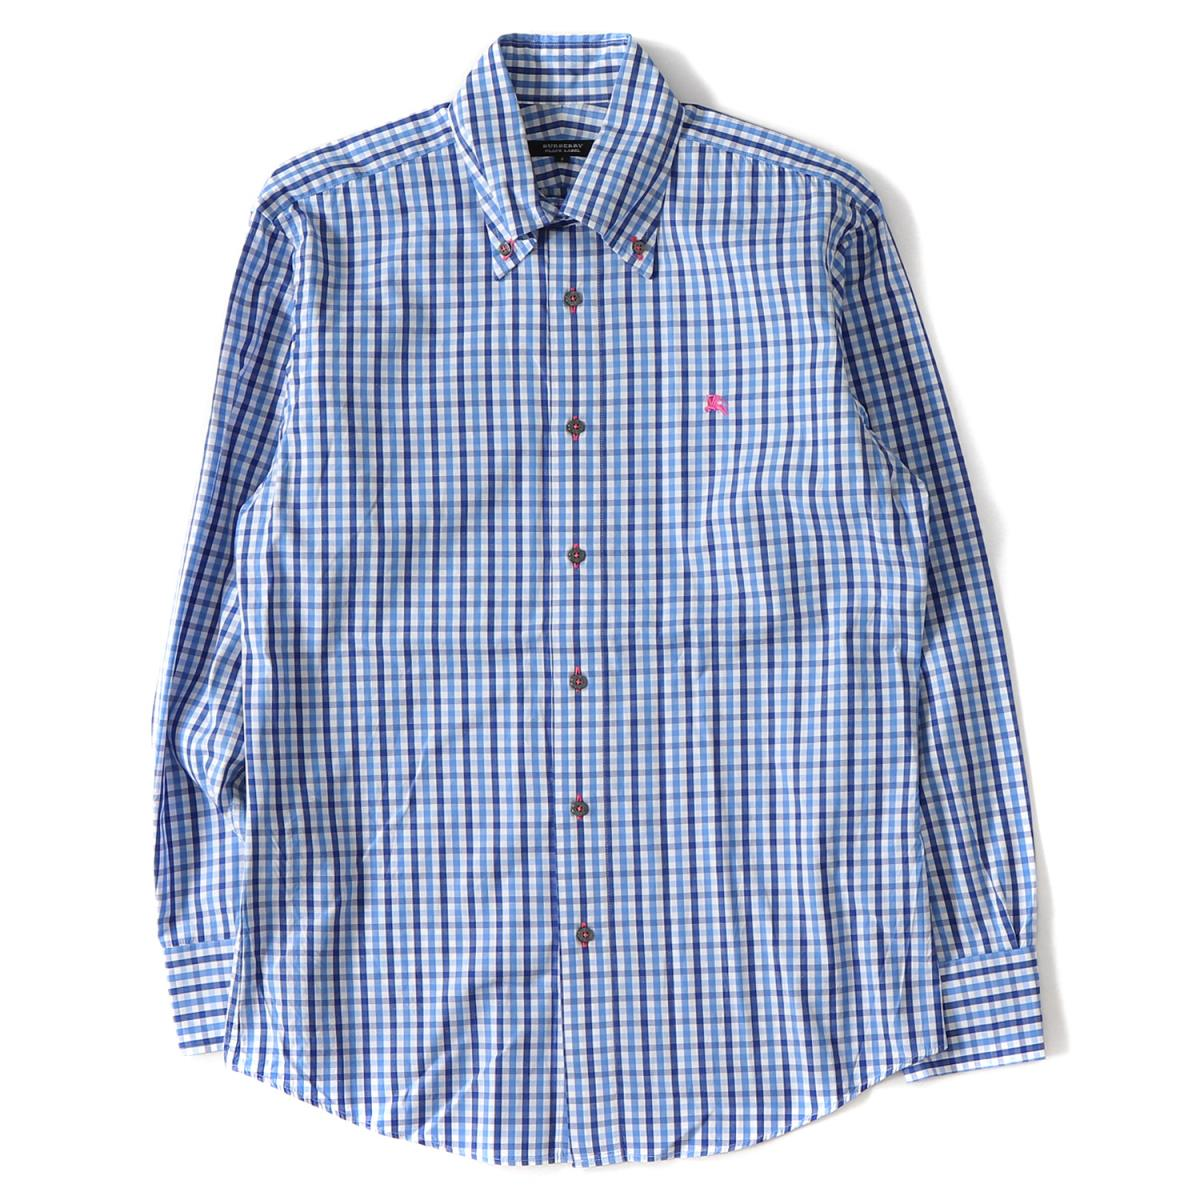 faee7680 BURBERRY (Burberry) icon embroidery gingham checked pattern cotton button-down  shirt blue 2 ...